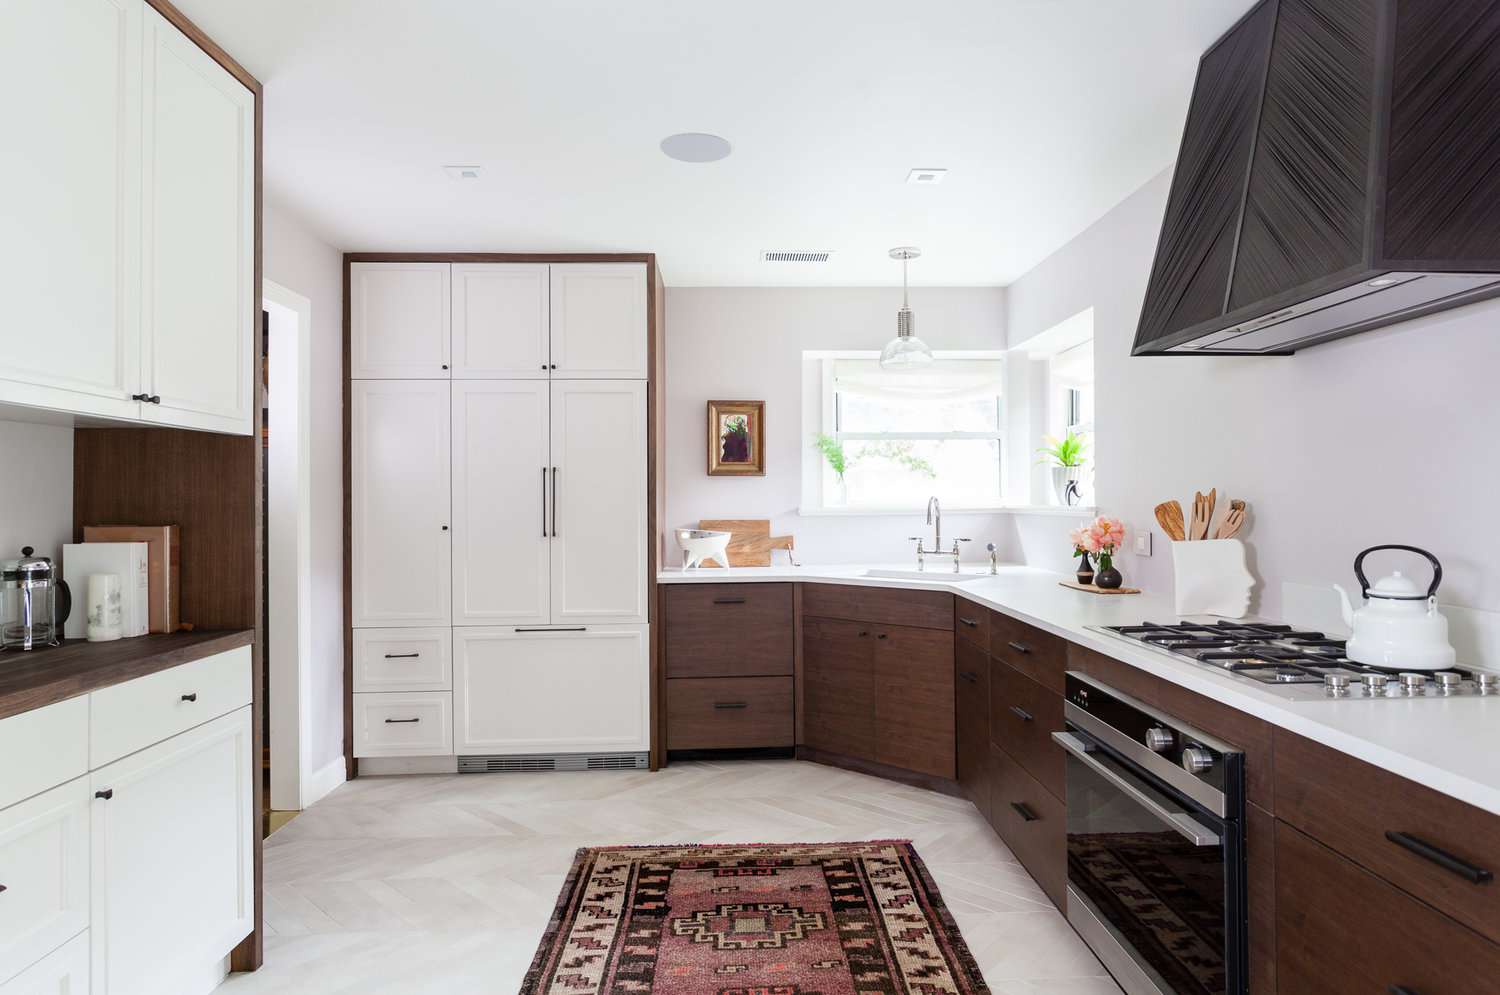 A kitchen with wood cabinets and a dark red printed rug